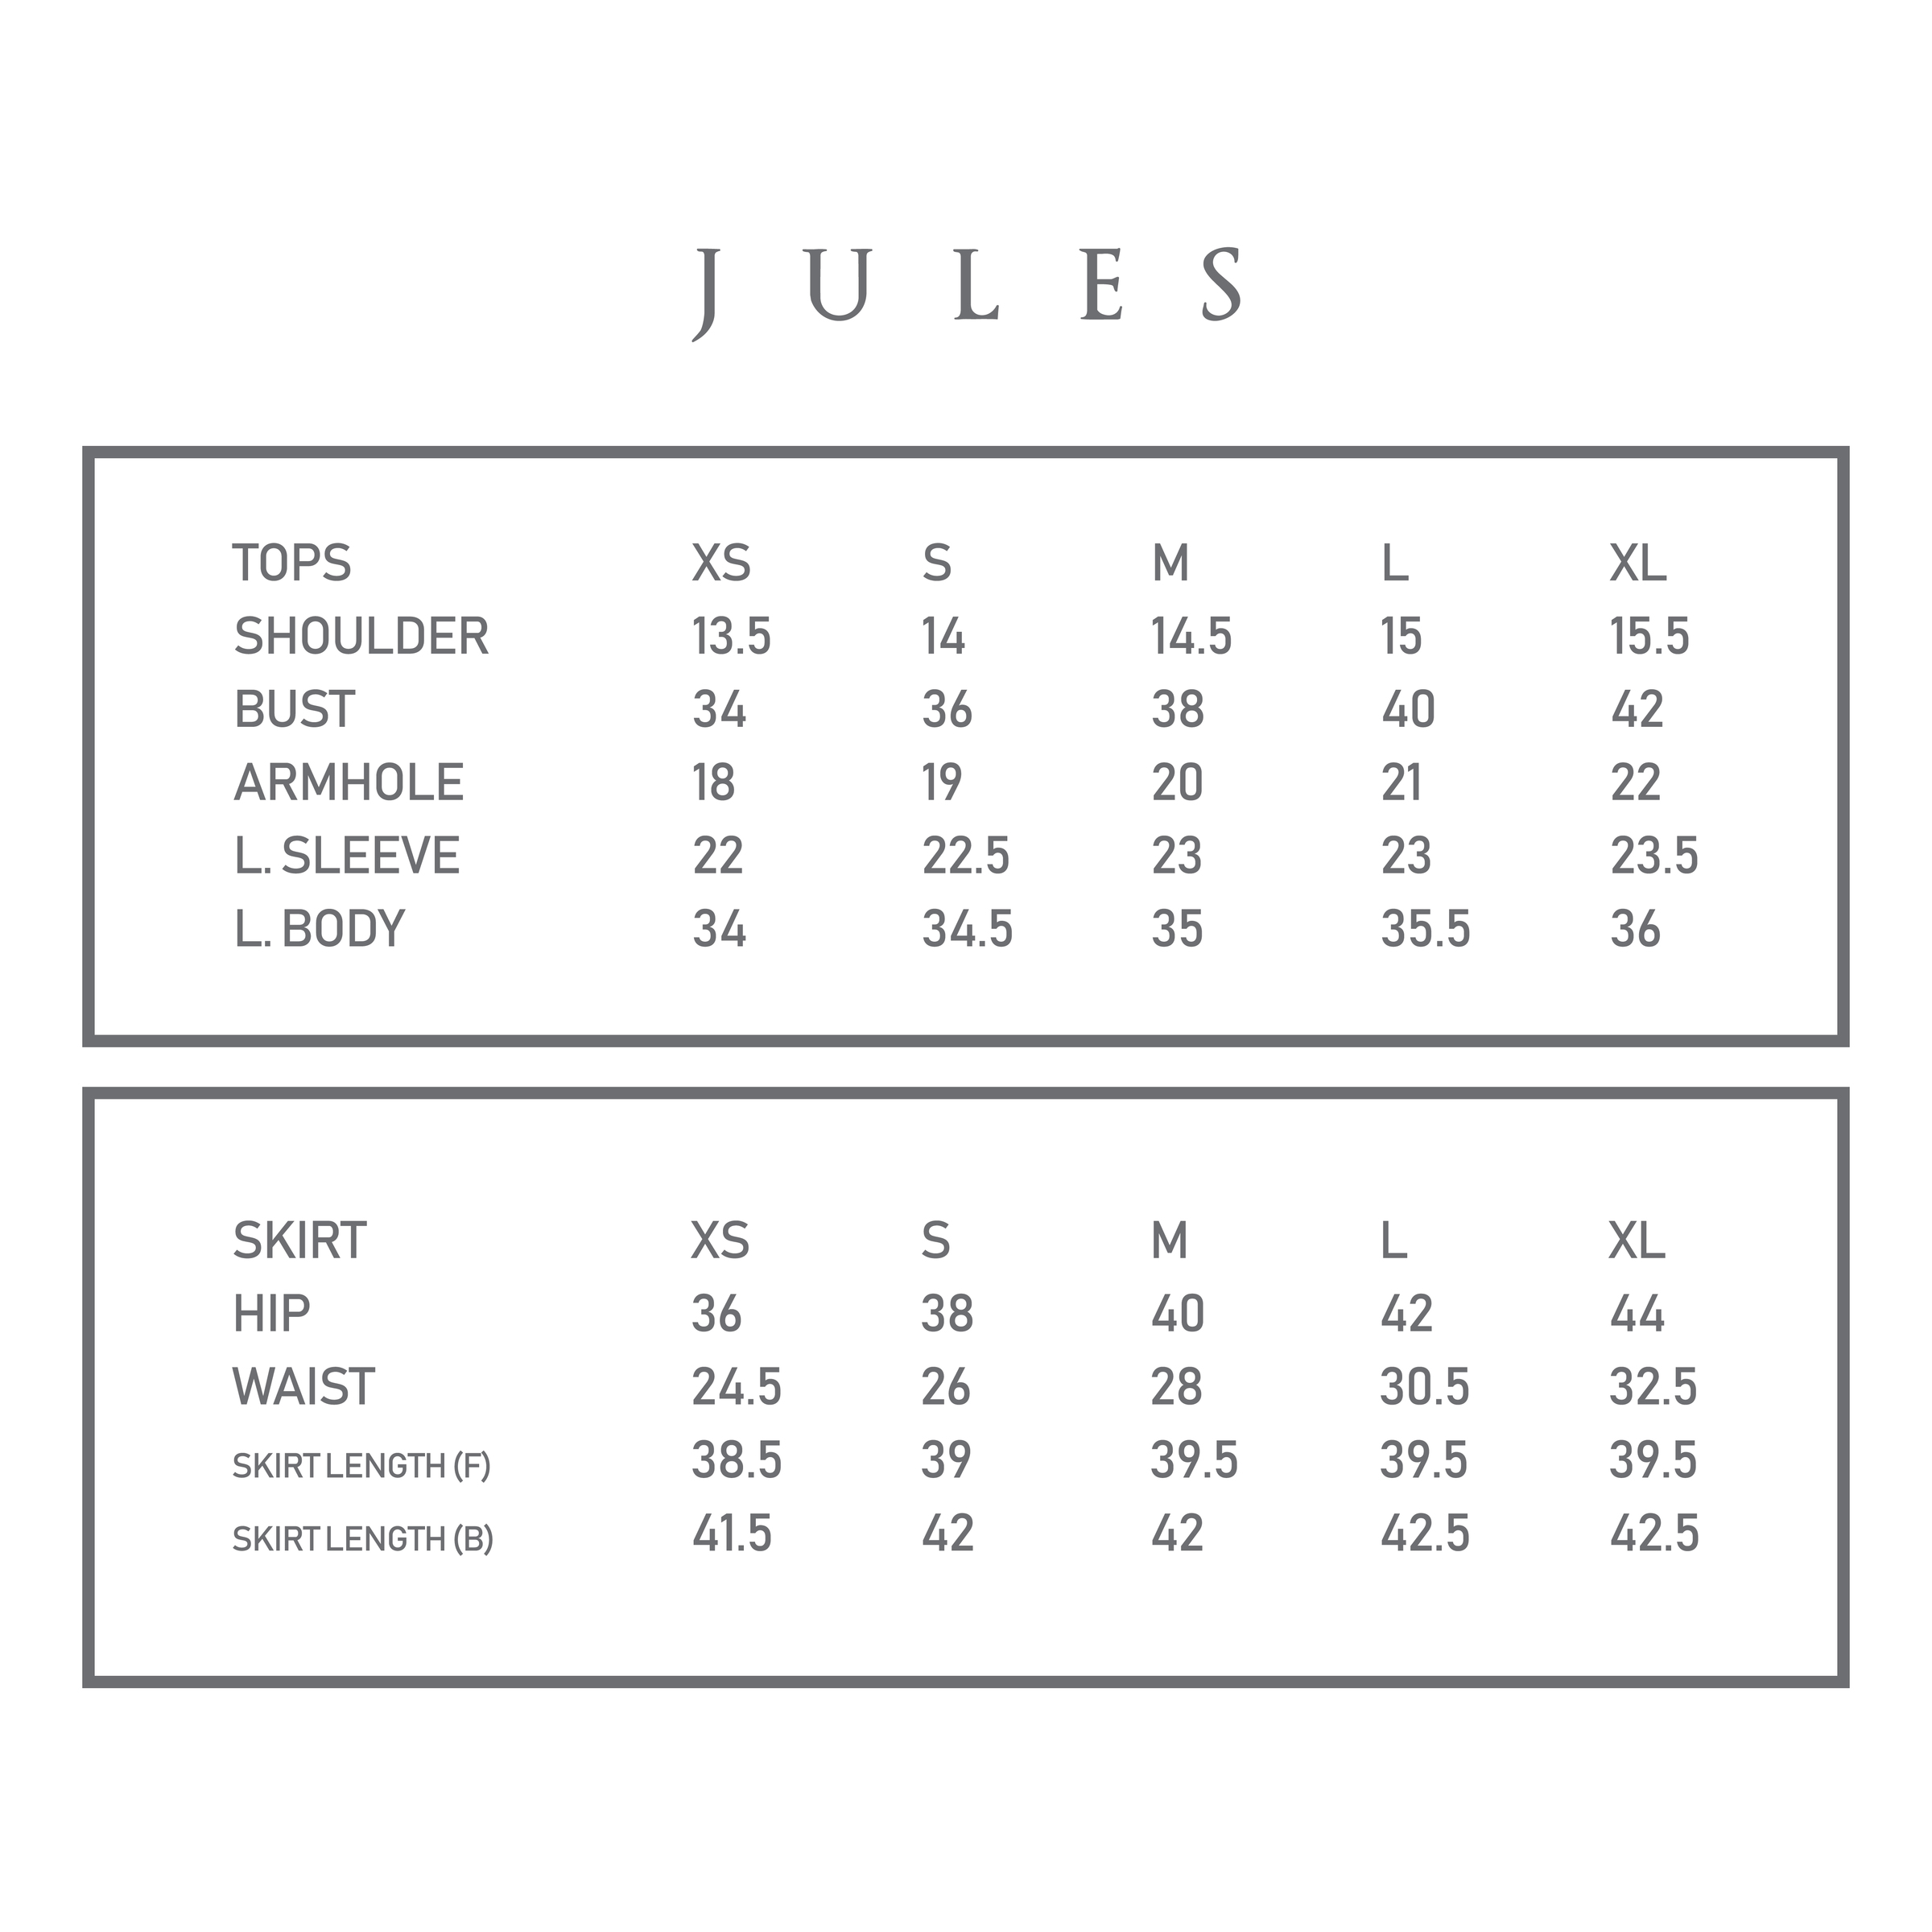 size measurement Jules-01.jpg